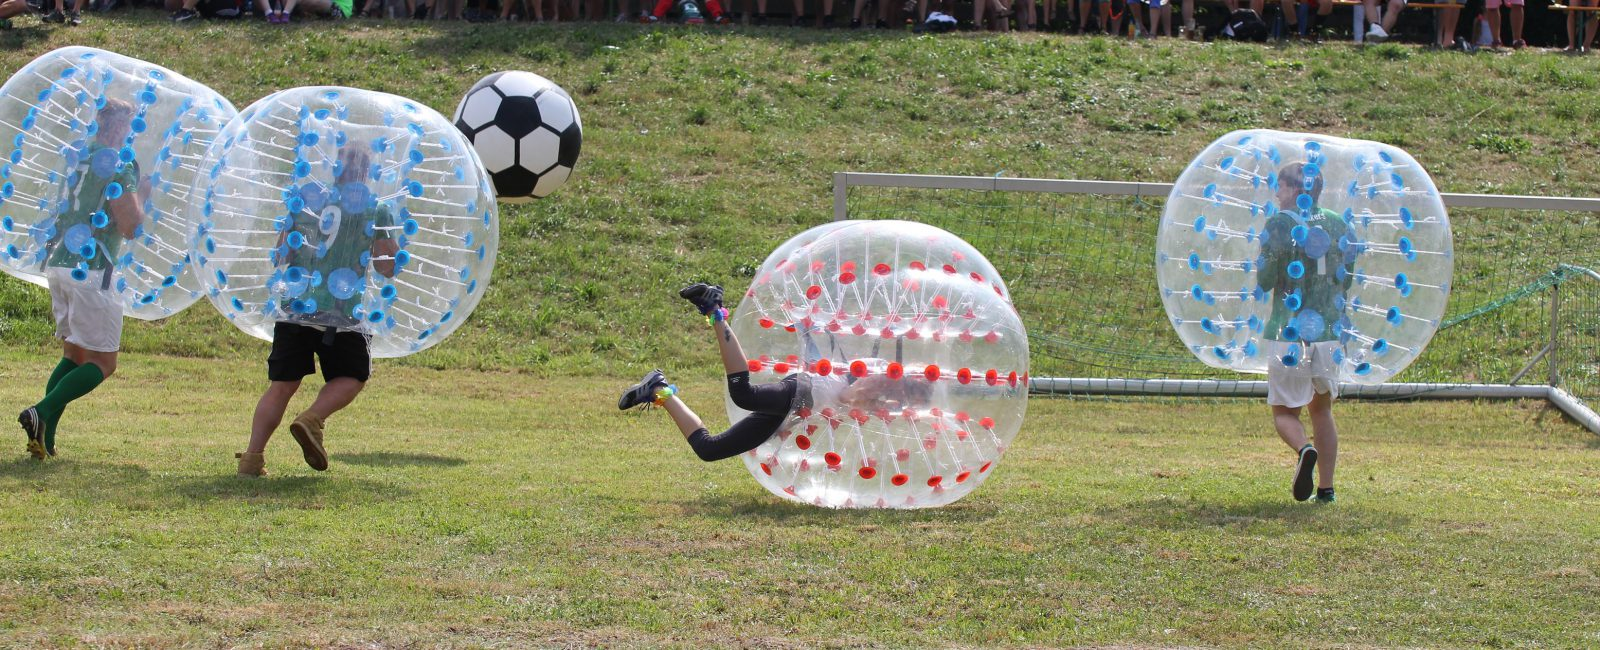 Crazy Bubbleball Turnier Stangenroth